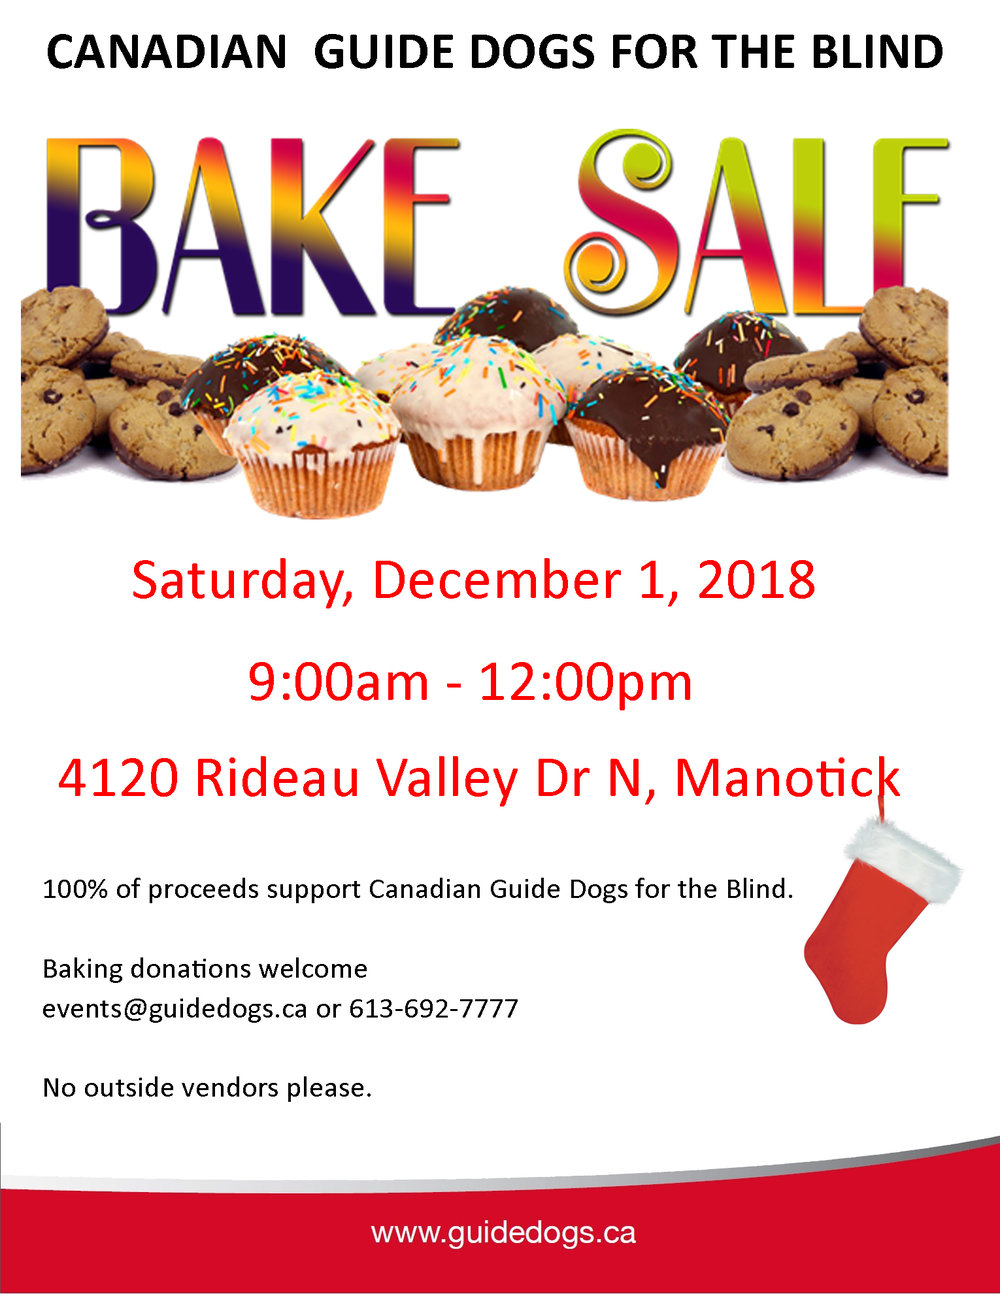 2018 BAKE SALE FLYER.jpg